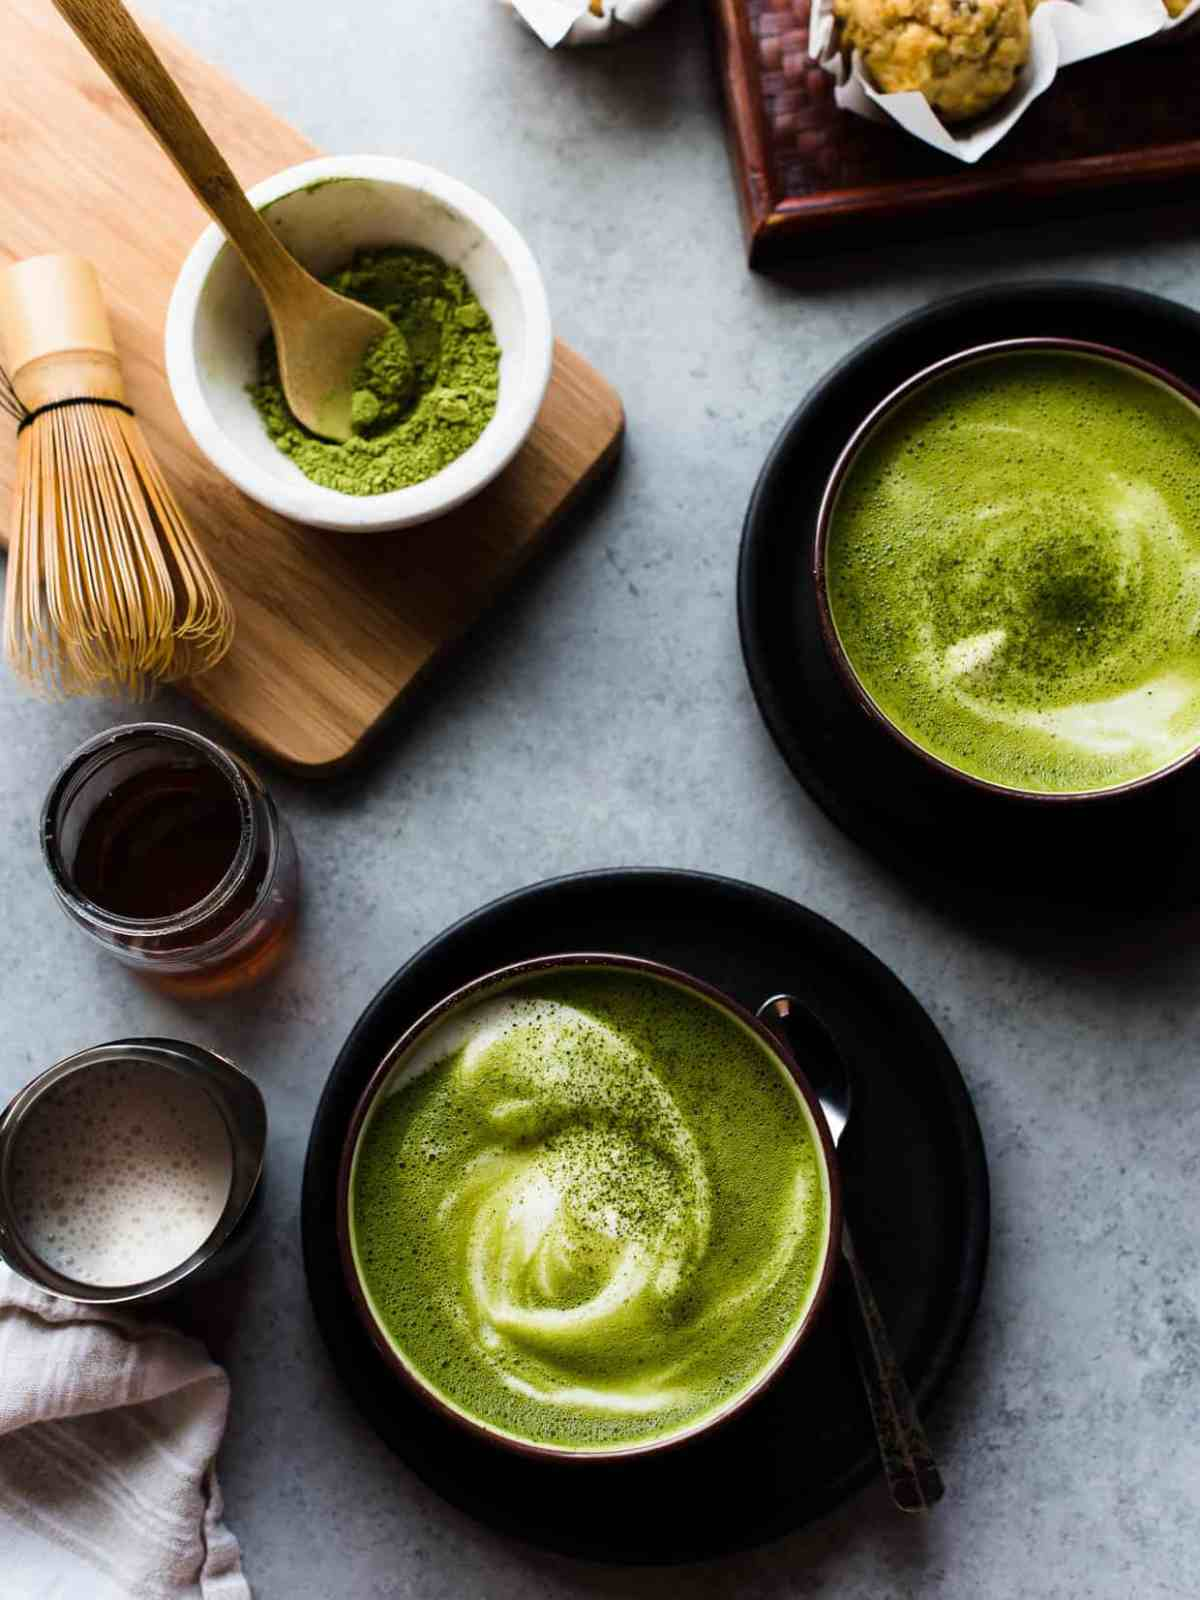 Cozy up with a matcha green tea latte made with almond milk - it is so easy to make at home!  #matcha #greentea #tea #latte #recipe #vegetarian #vegan